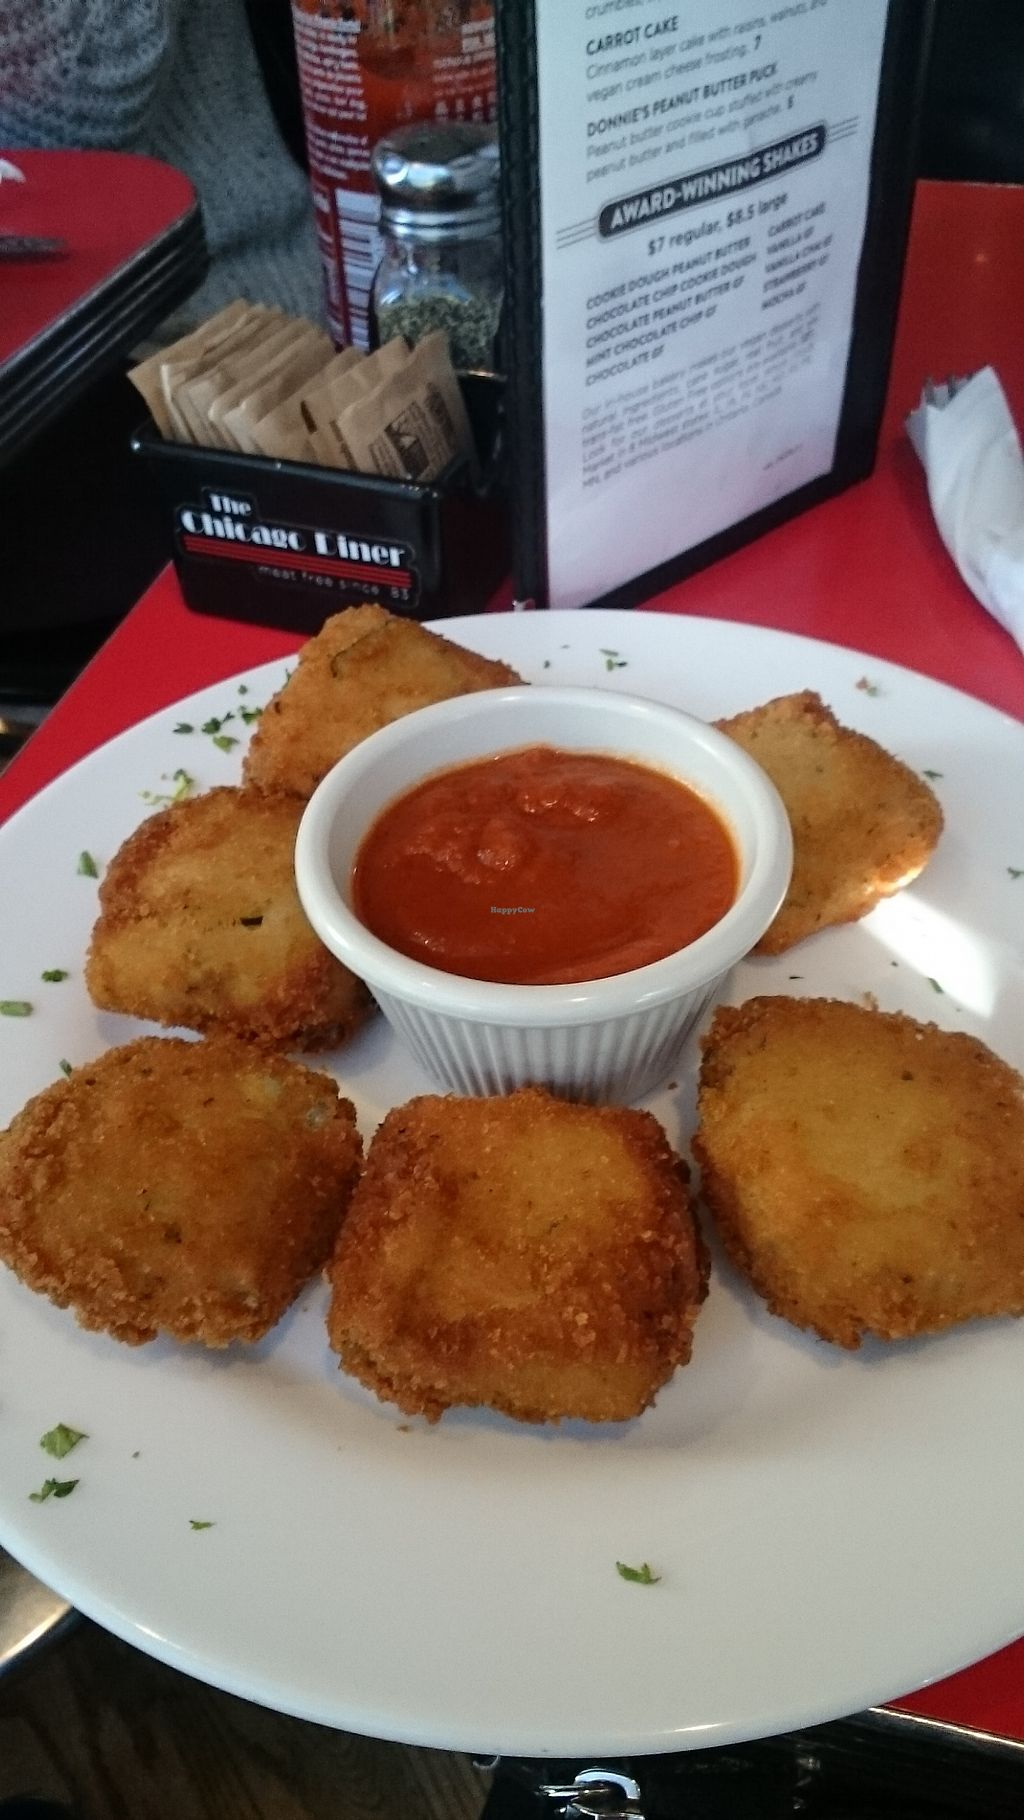 """Photo of The Chicago Diner  by <a href=""""/members/profile/ZoraySpielvogel"""">ZoraySpielvogel</a> <br/>Stuffed zucchini empanaita.  <br/> January 28, 2018  - <a href='/contact/abuse/image/1943/352056'>Report</a>"""